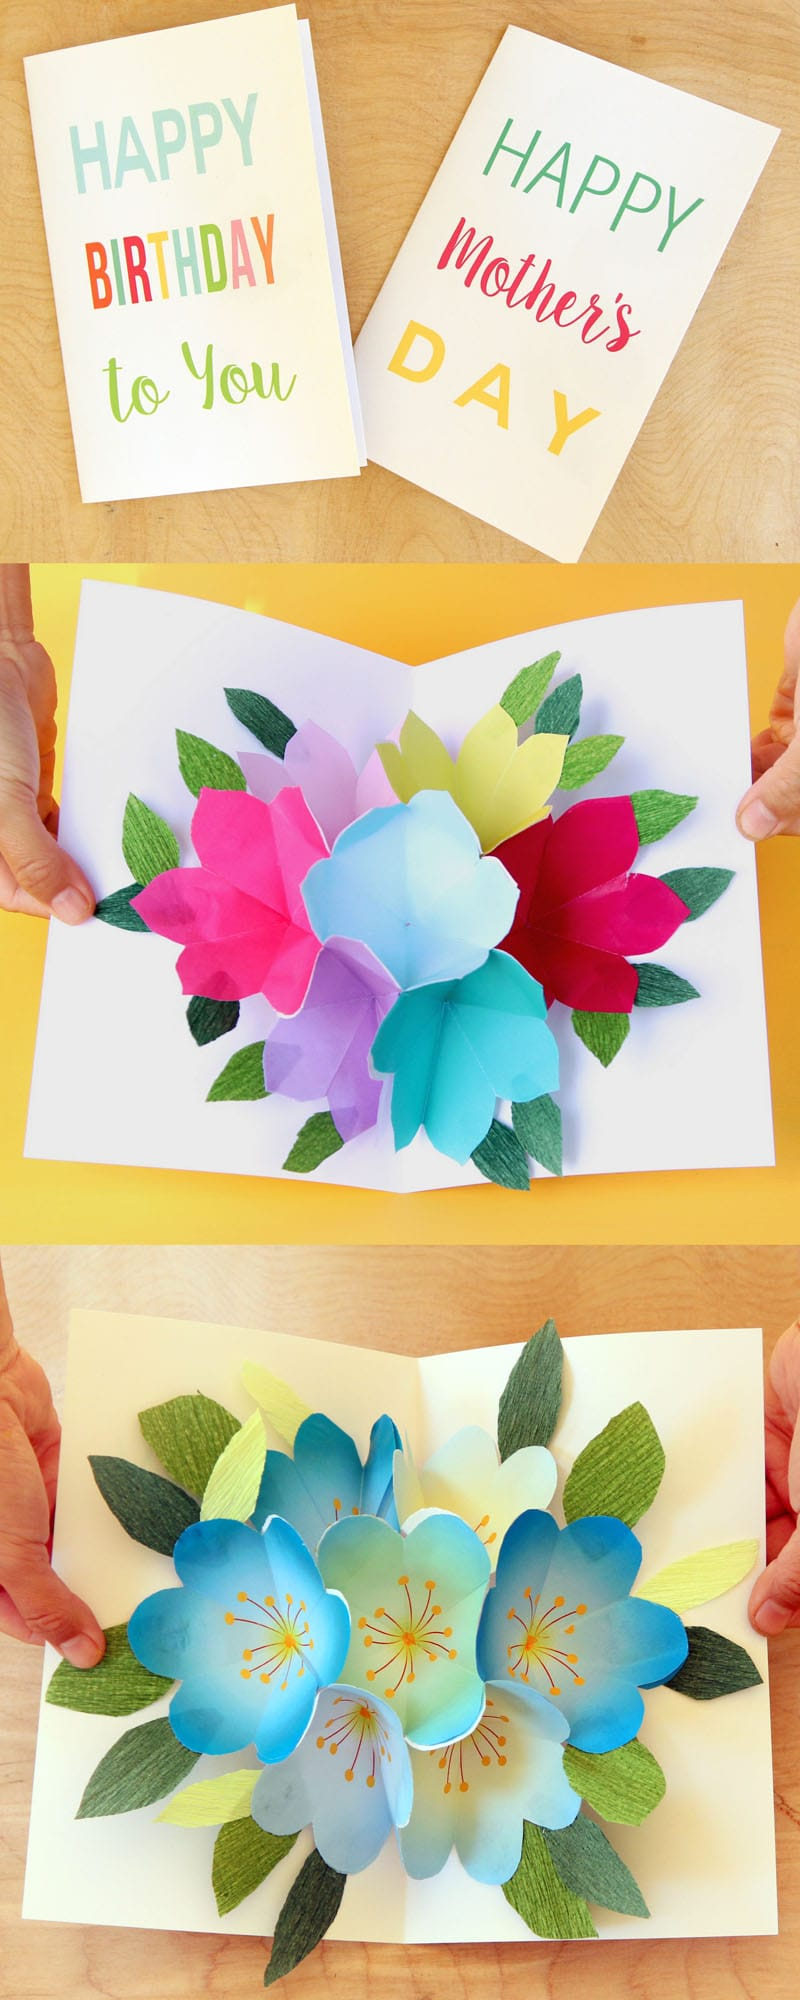 Free printable happy birthday card with pop up bouquet a piece of you can make this easy and free printable birthday card in less than an hour oh and the best part a big bouquet pops right out when your loved one opens bookmarktalkfo Gallery